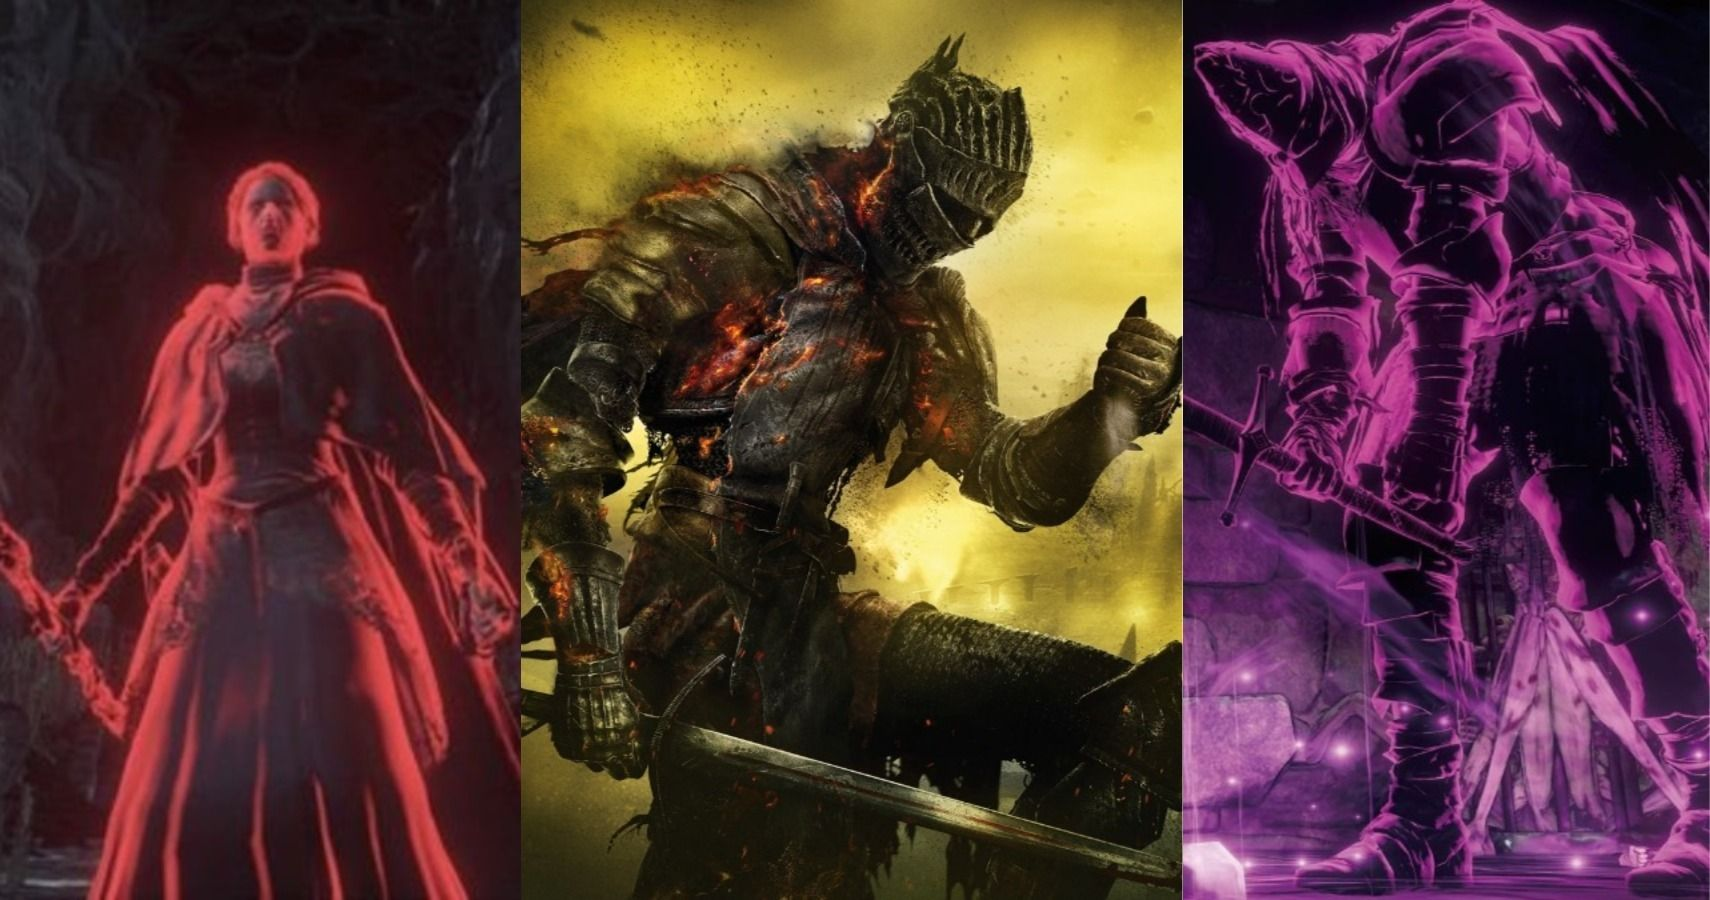 Dark Souls 3 Every Npc Invader Tips For Beating Them Yuria of londor and londor pale shade. dark souls 3 every npc invader tips